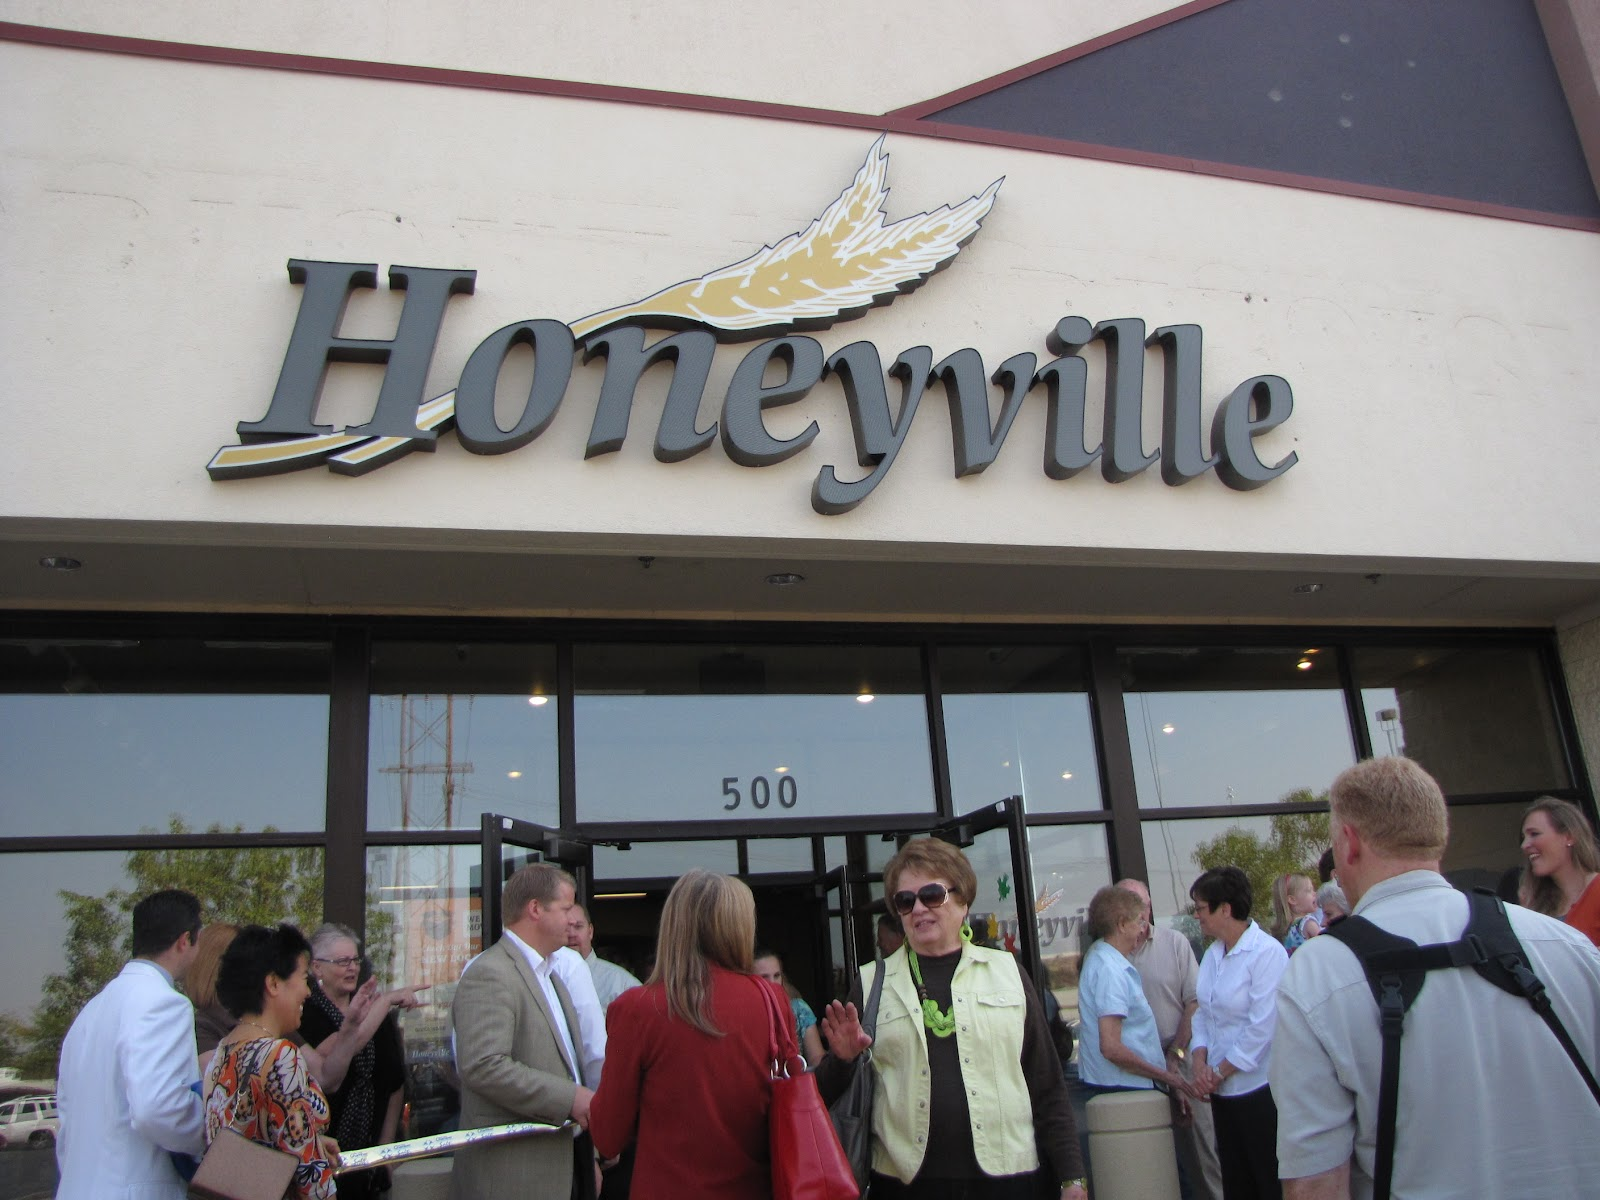 Come visit us at Honeyville in person! Our factory store is located just ten miles north of the beautiful Durango, Colorado in the gorgeous Animas Valley.